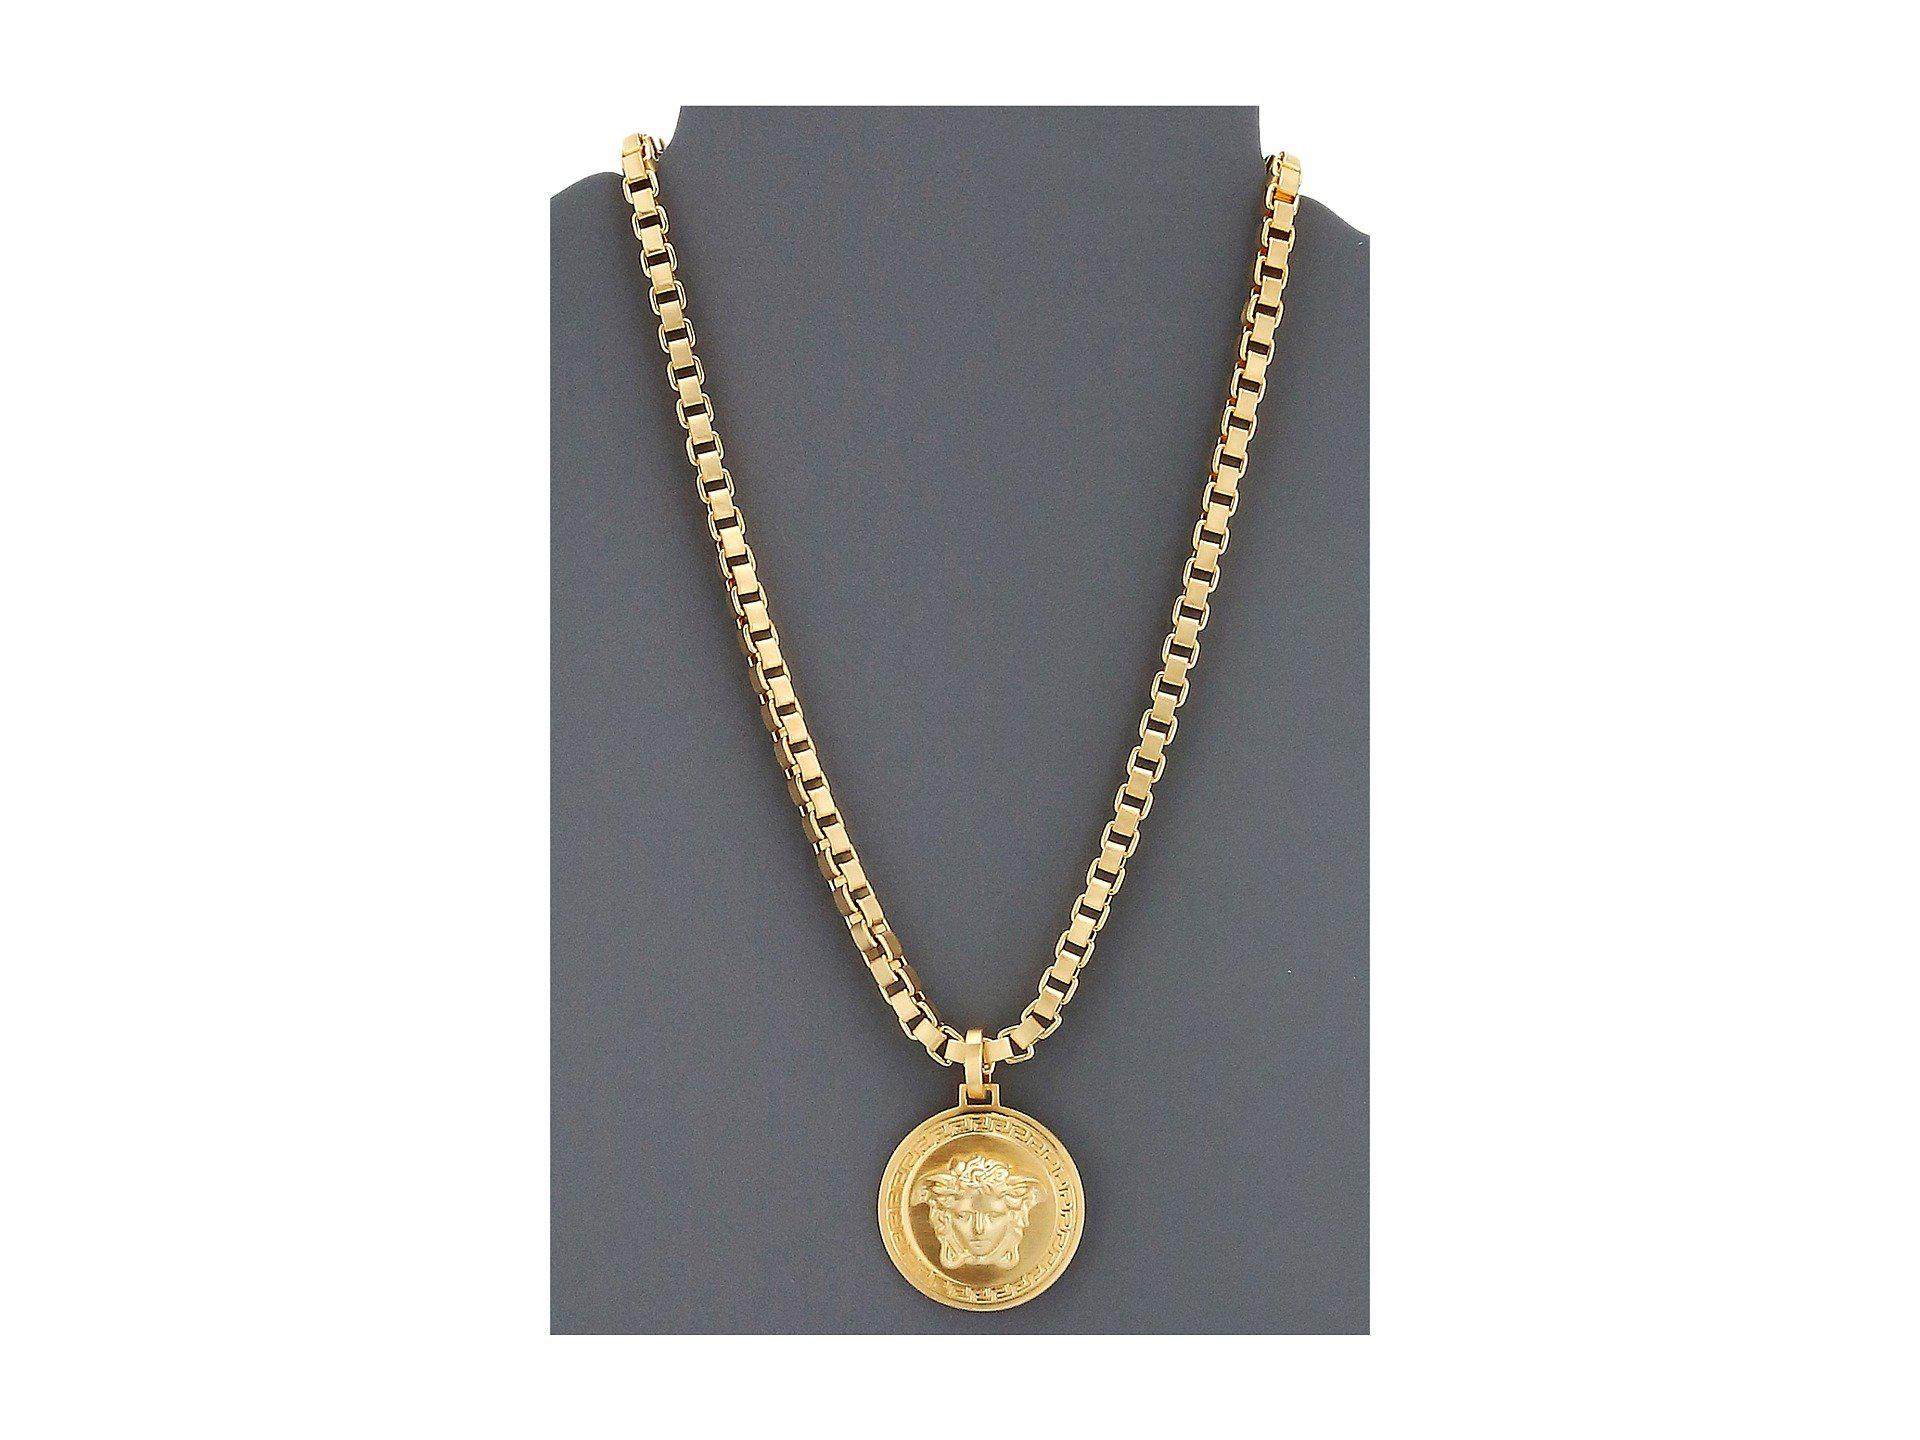 lion gold chain blingby medallion necklace tone l gucci mens pattern pendant nation